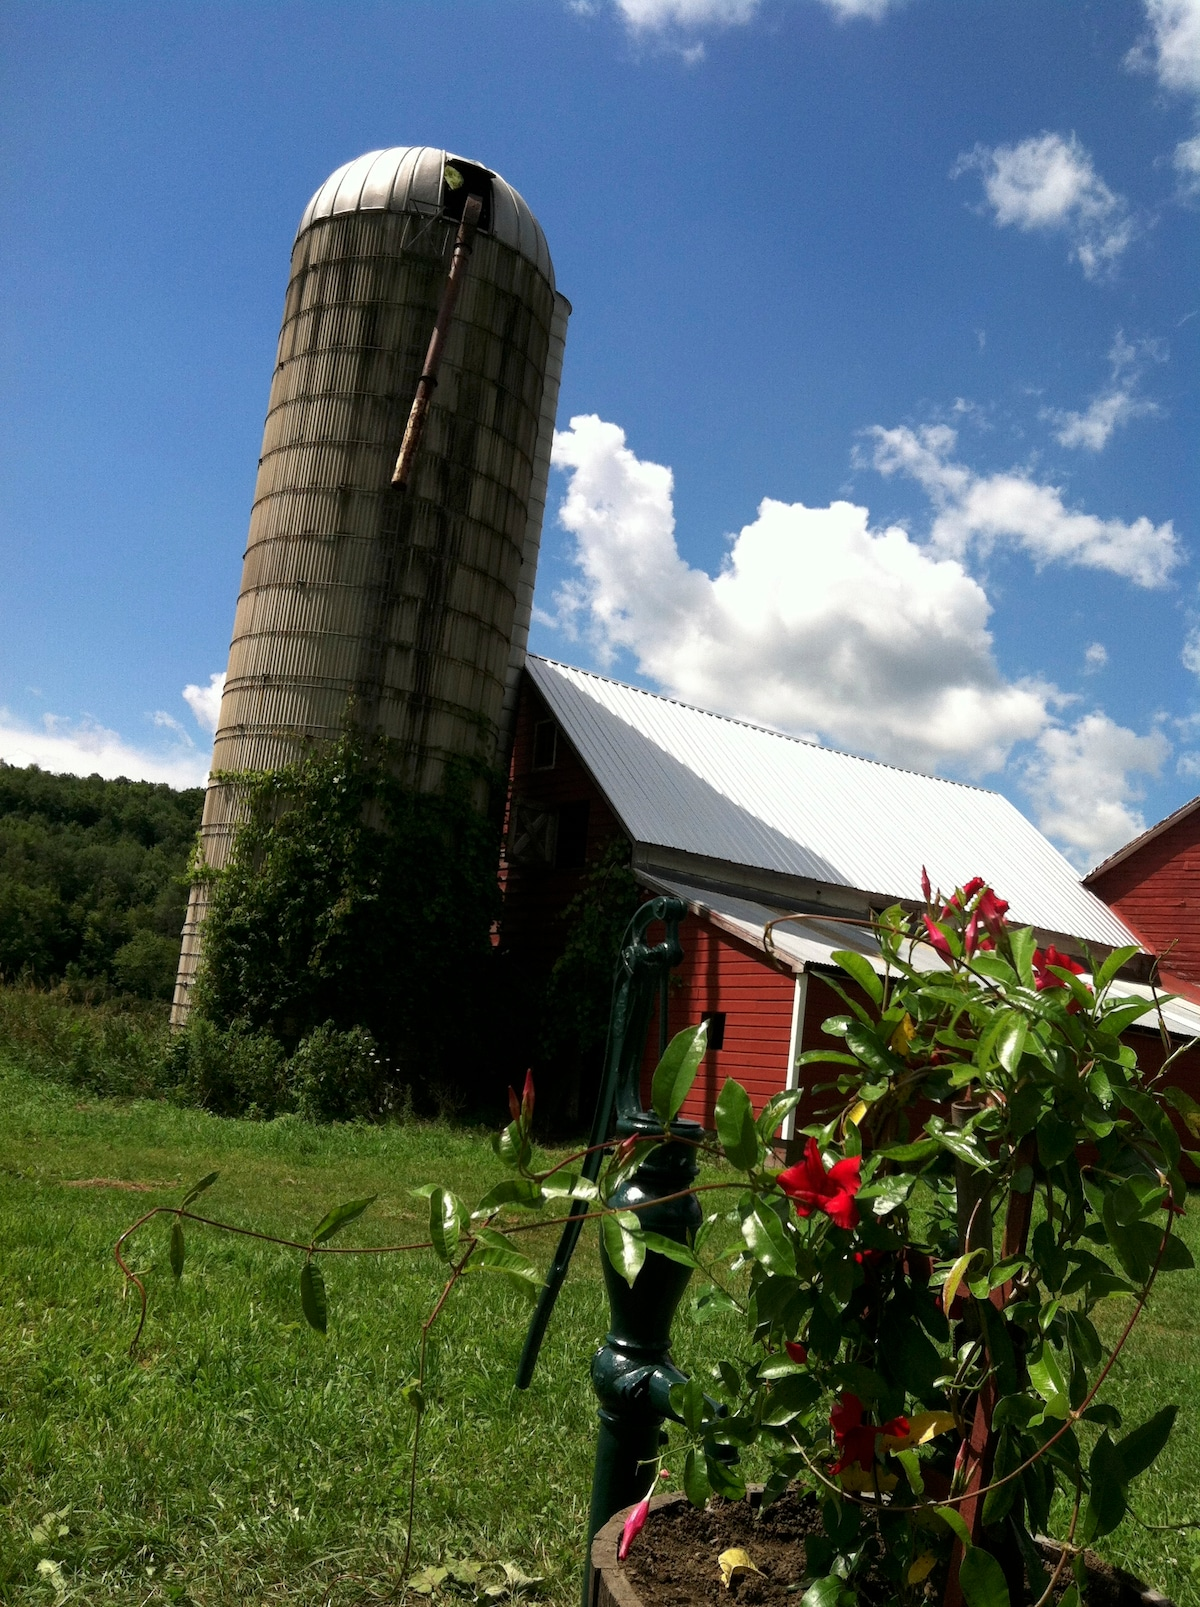 the barn and silo